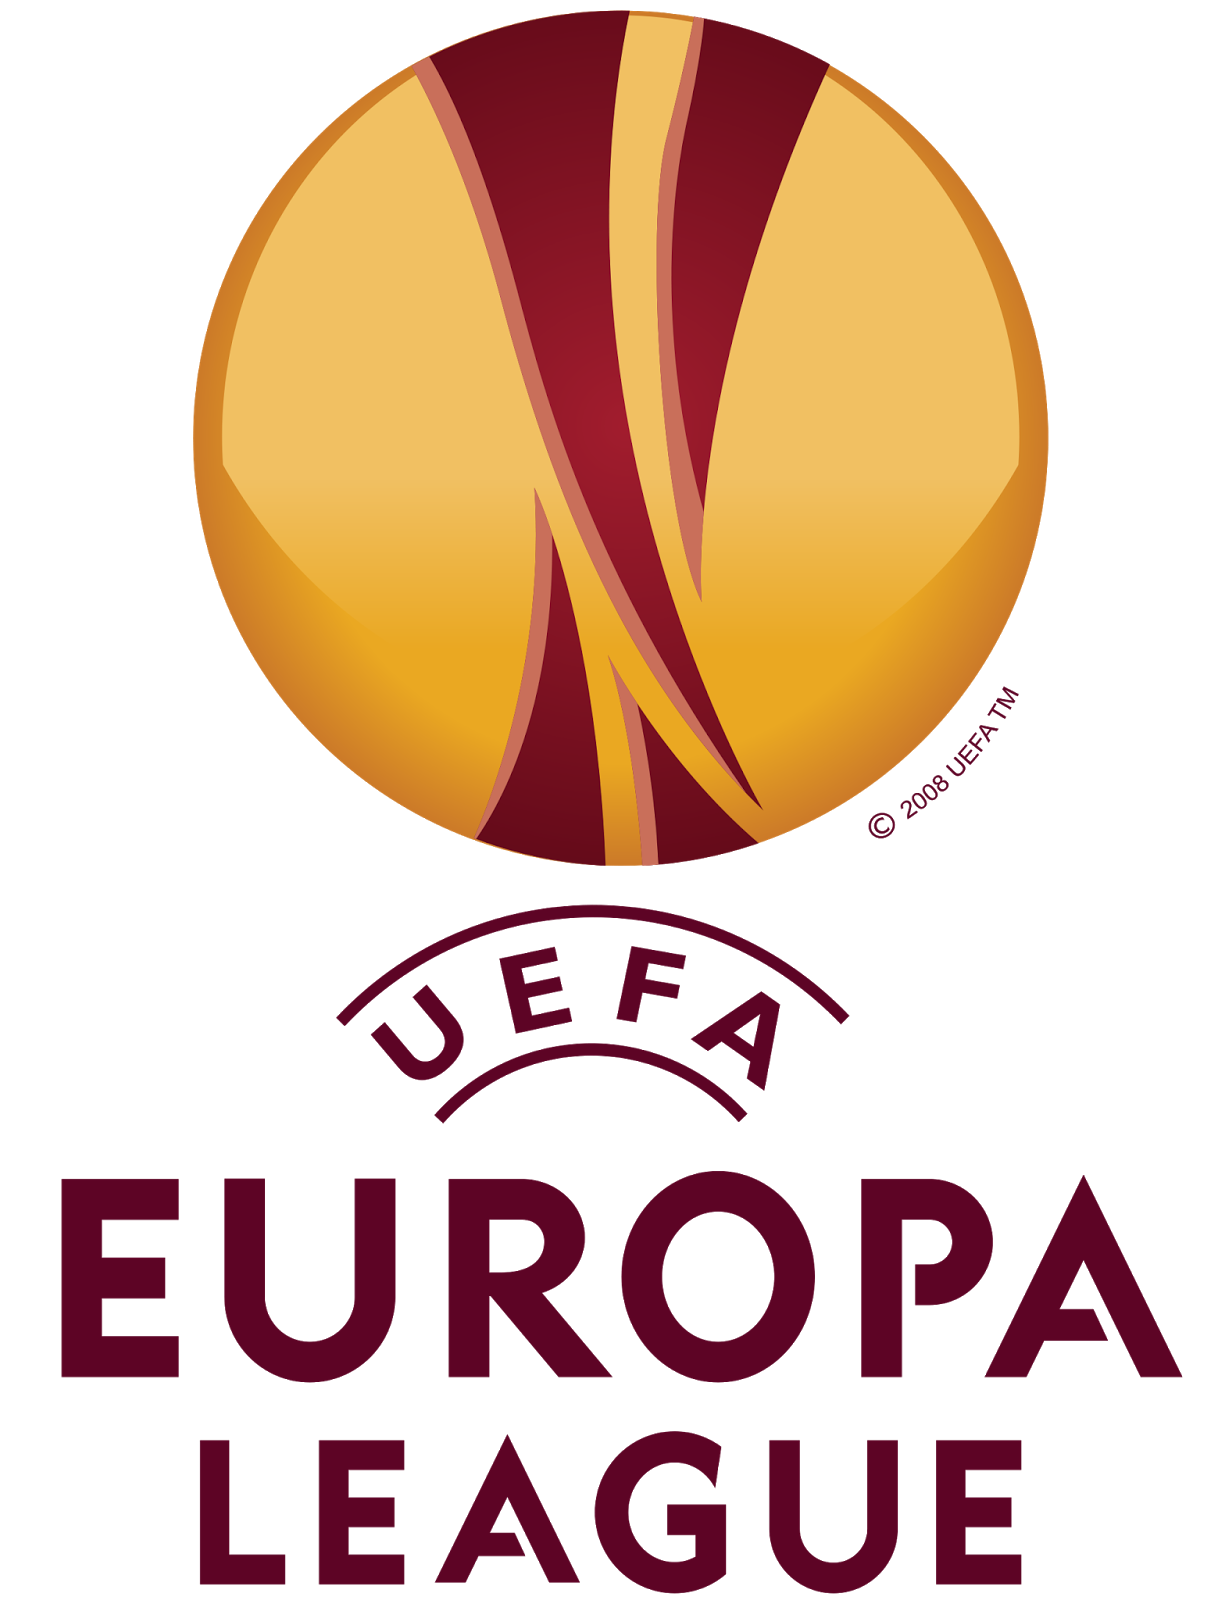 europa league - photo #11